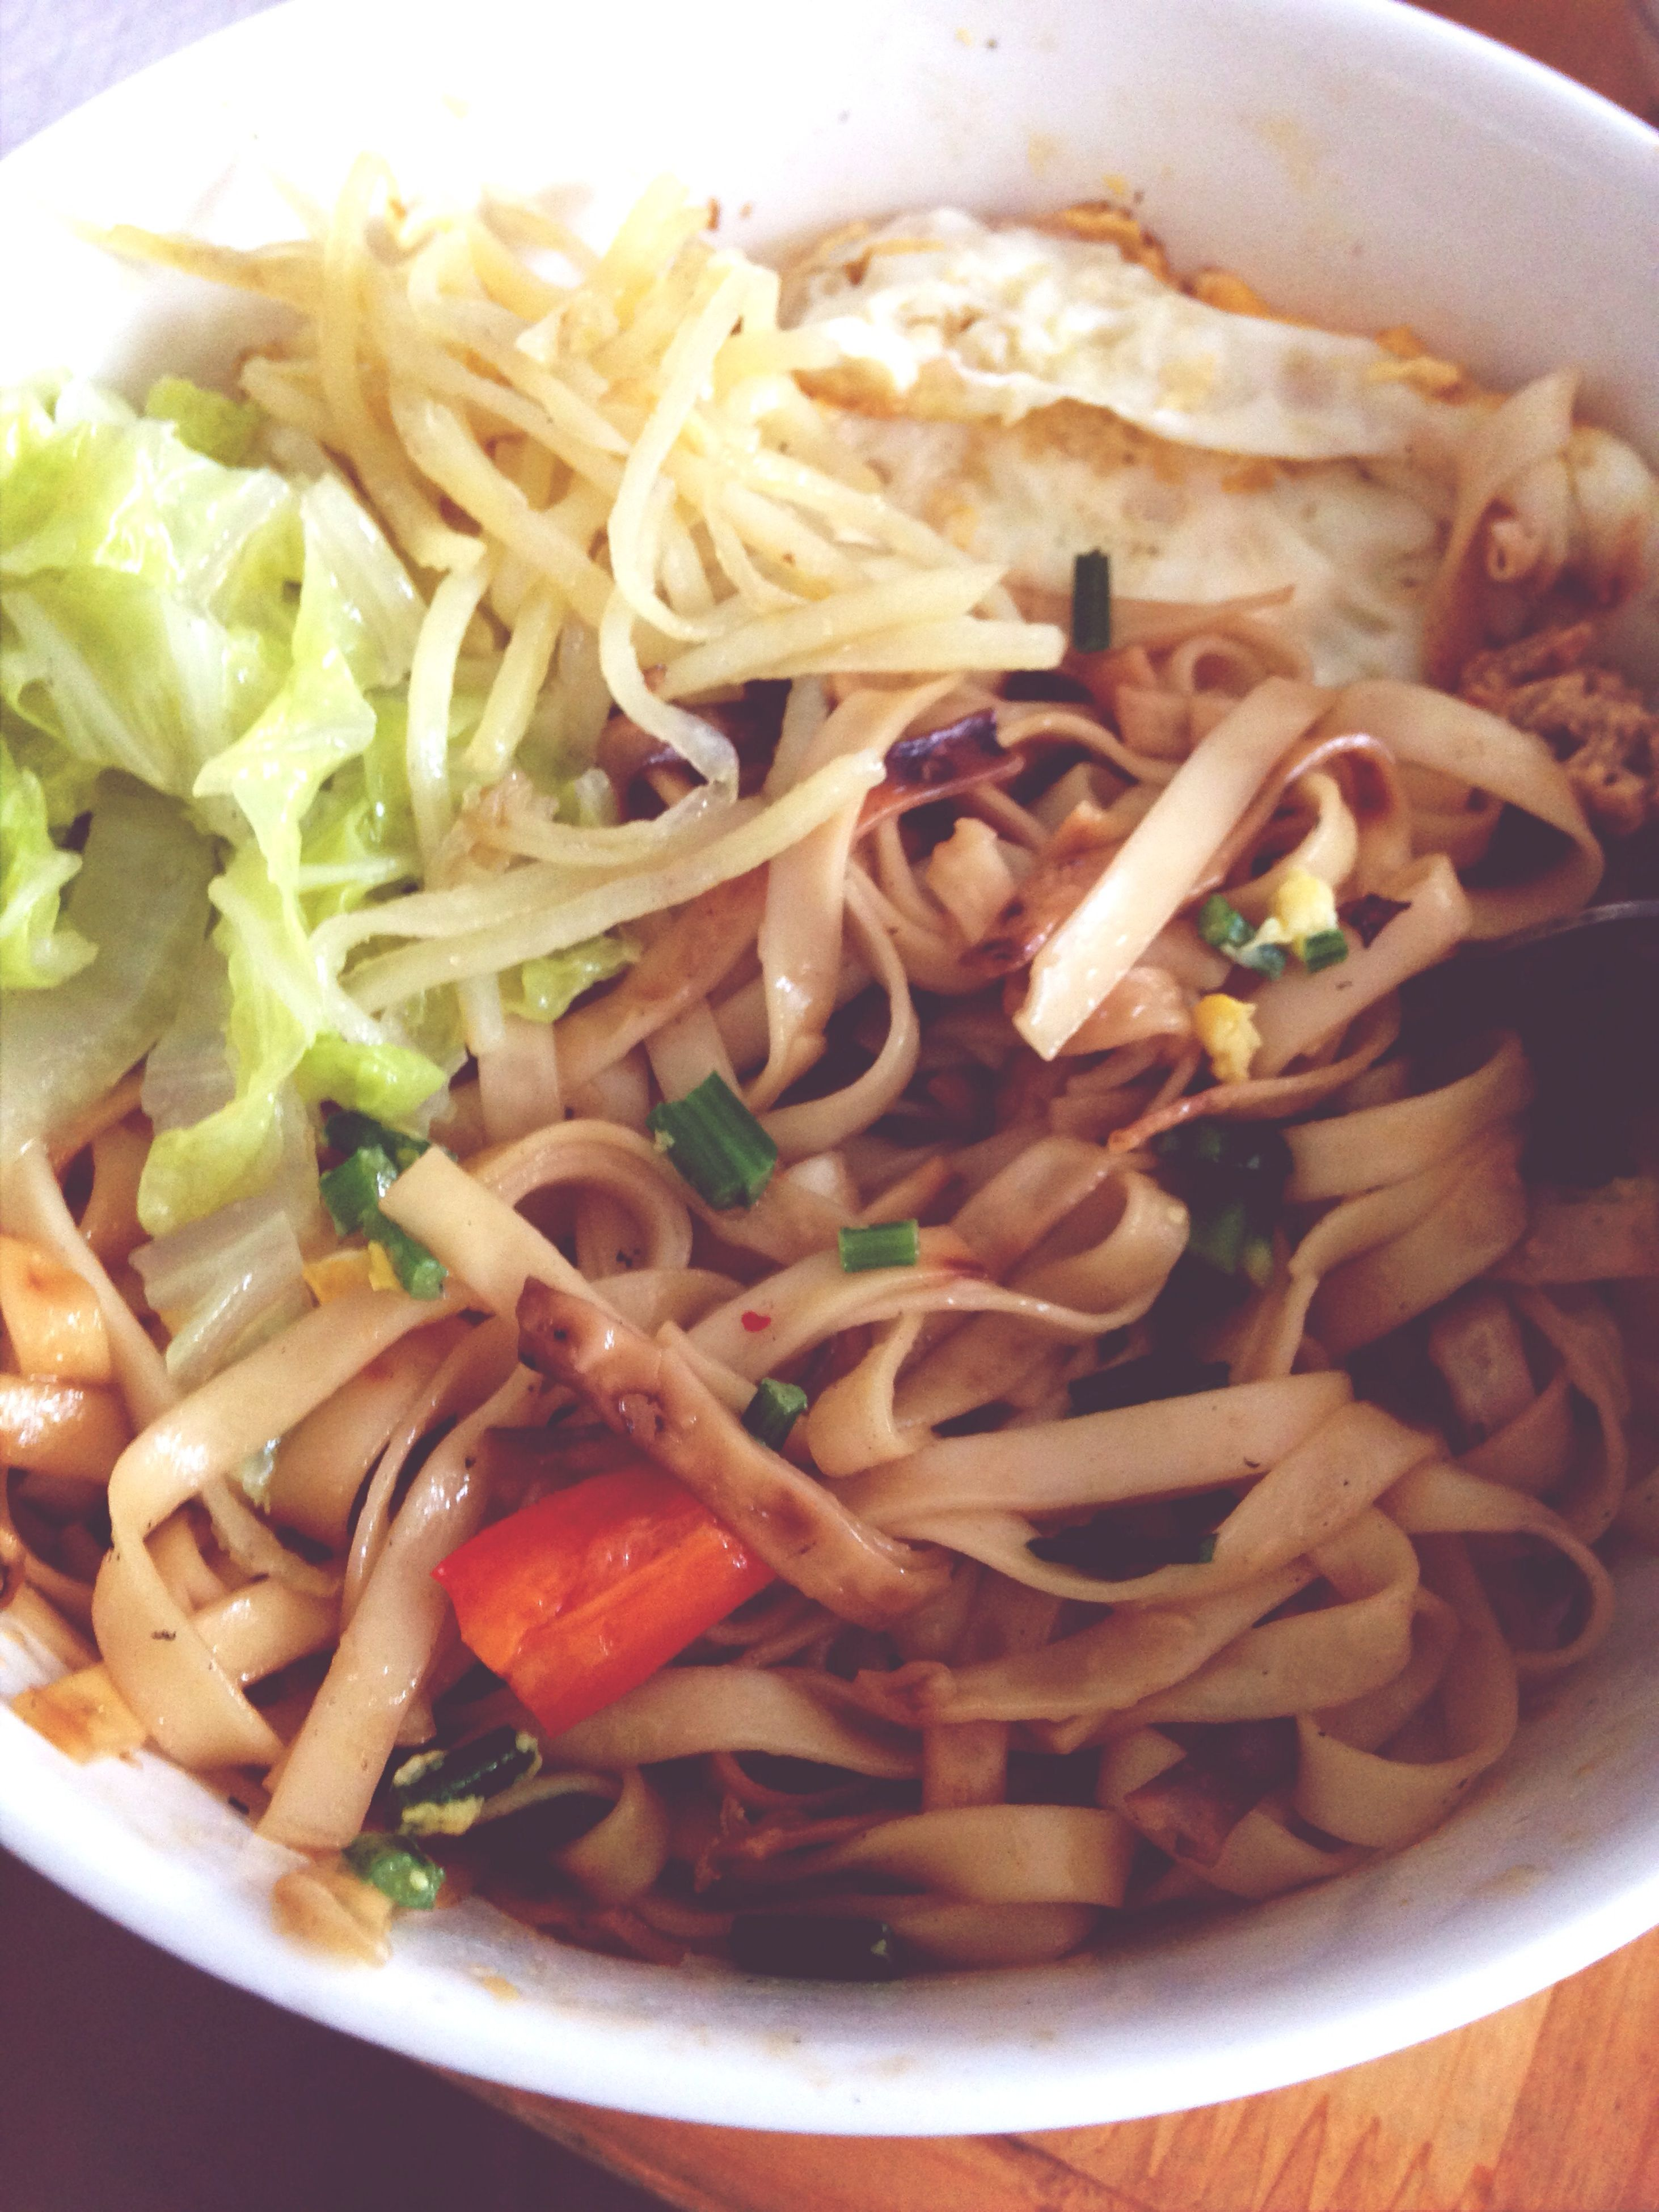 food and drink, food, freshness, indoors, ready-to-eat, plate, meal, close-up, healthy eating, serving size, still life, noodles, indulgence, pasta, meat, cooked, bowl, high angle view, healthy lifestyle, seafood